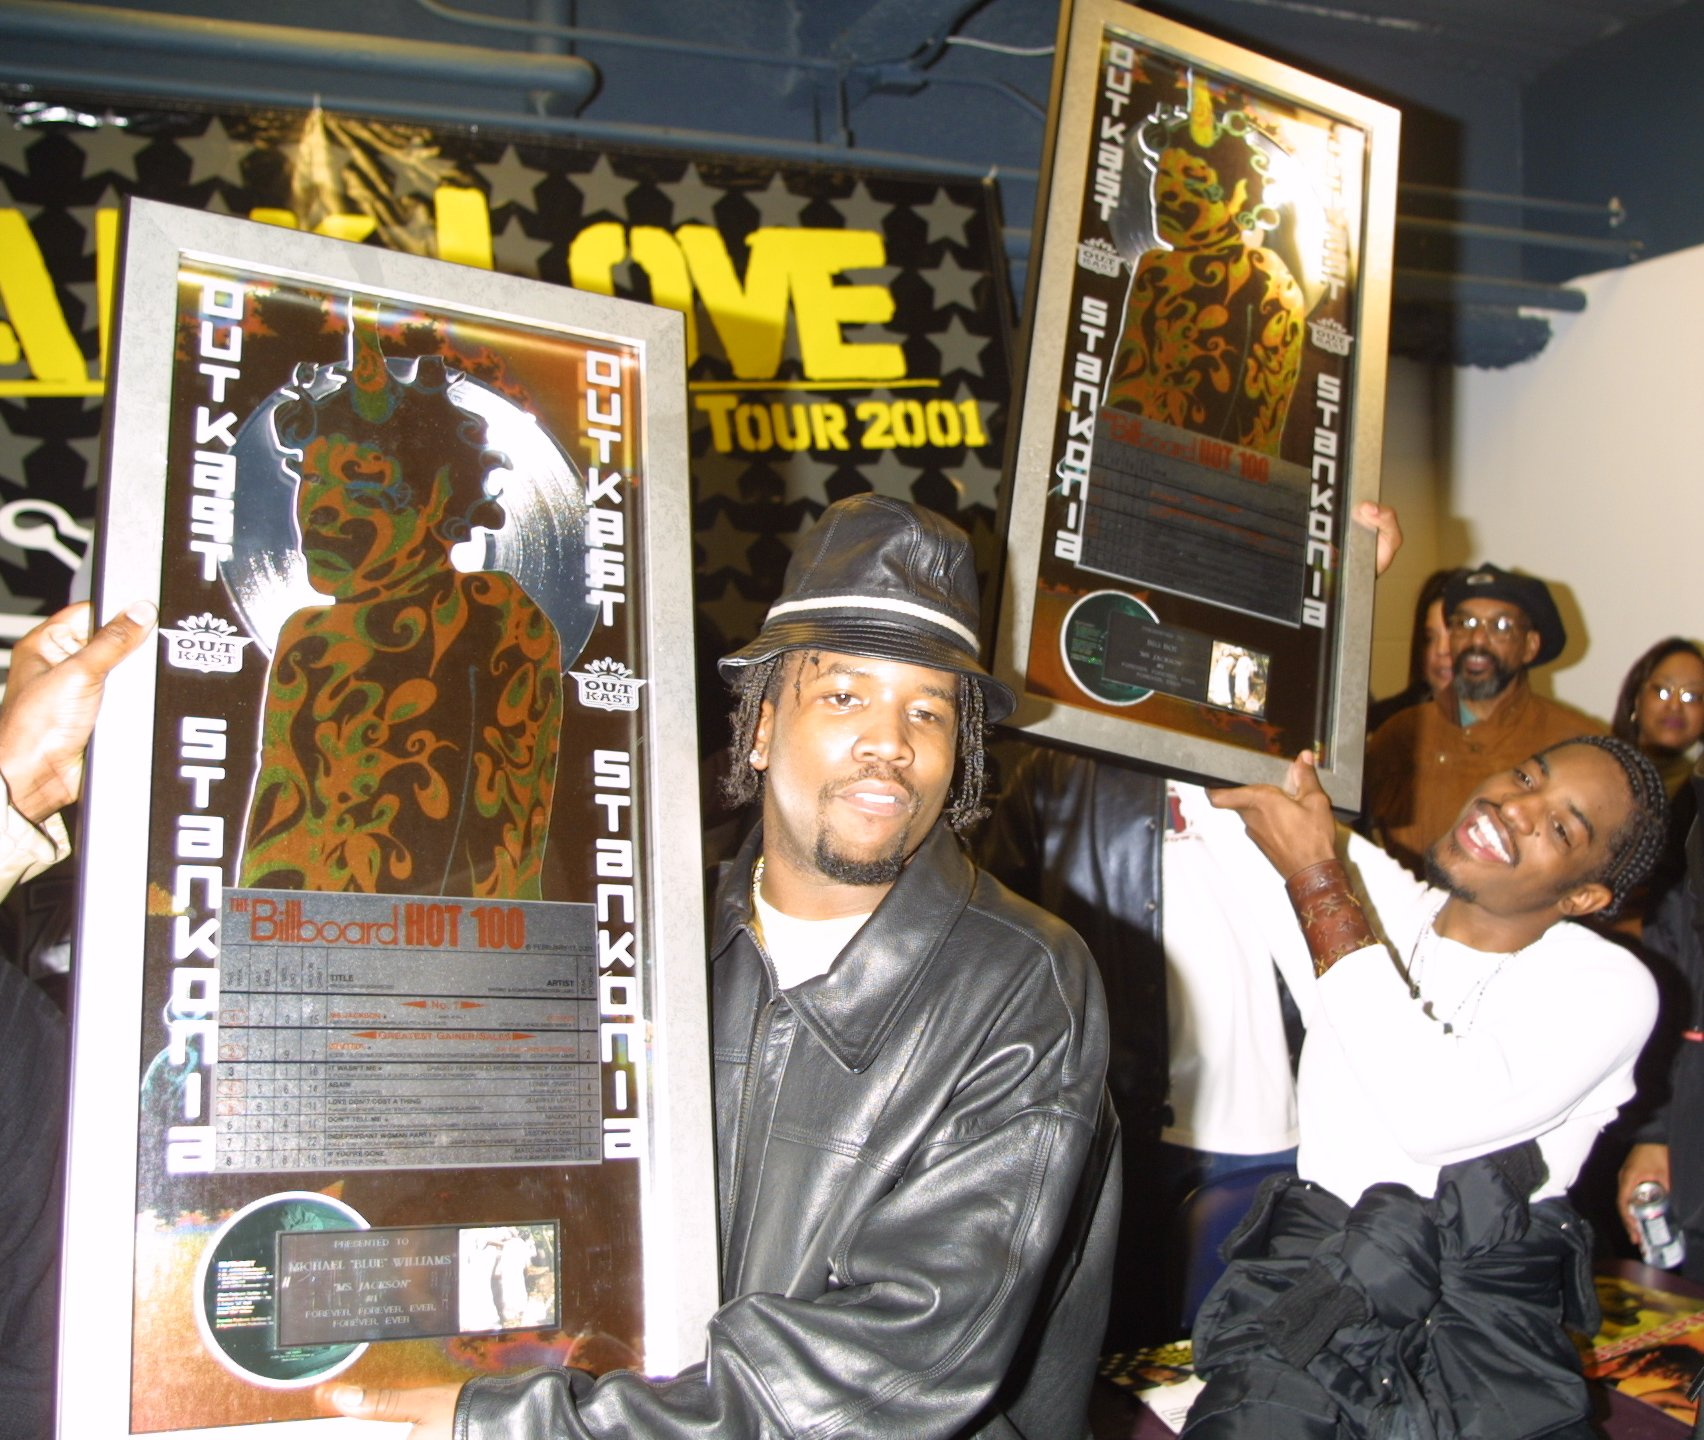 Outkast, Ludacris and Foxy Brown in Concert at Madison Square Garden